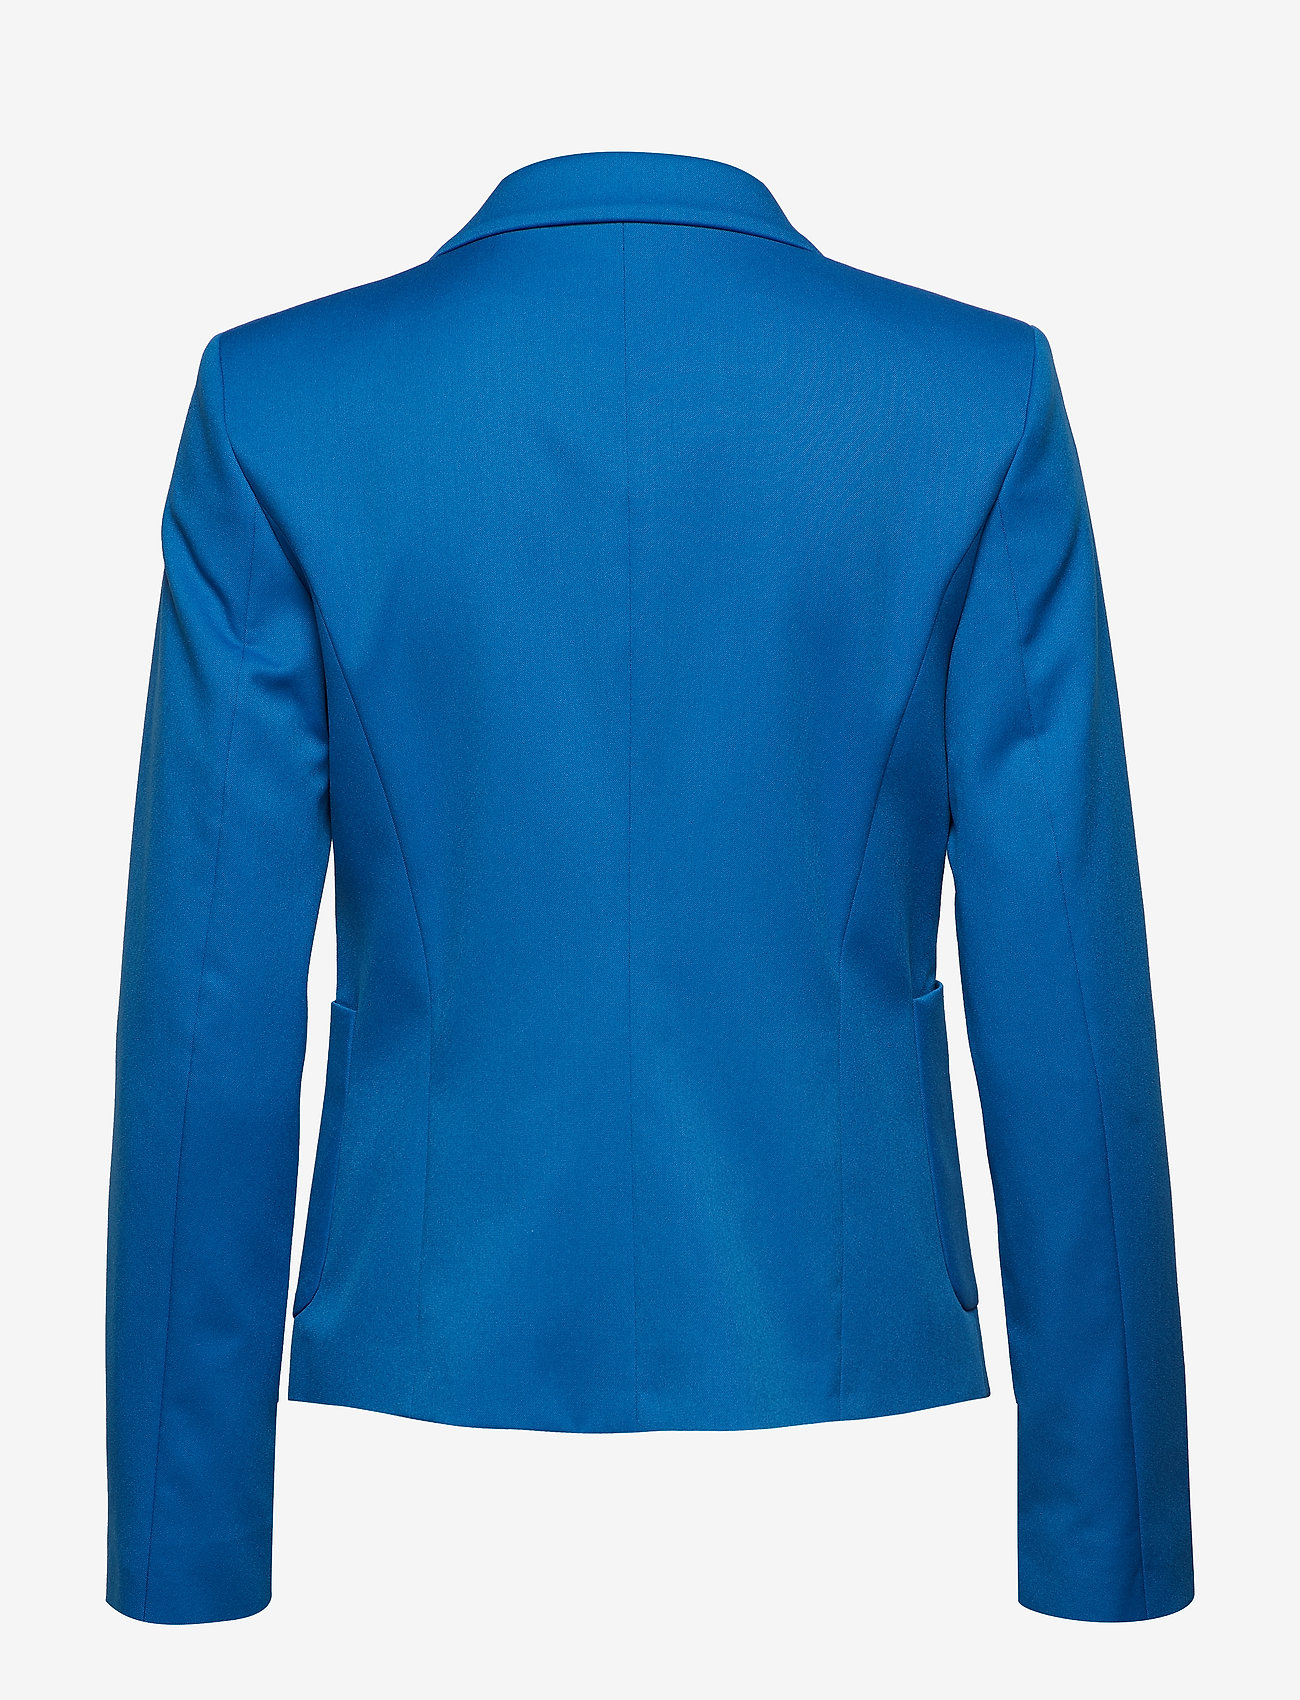 2ndday 2nd July - Vestes Tailleur Happy Blue